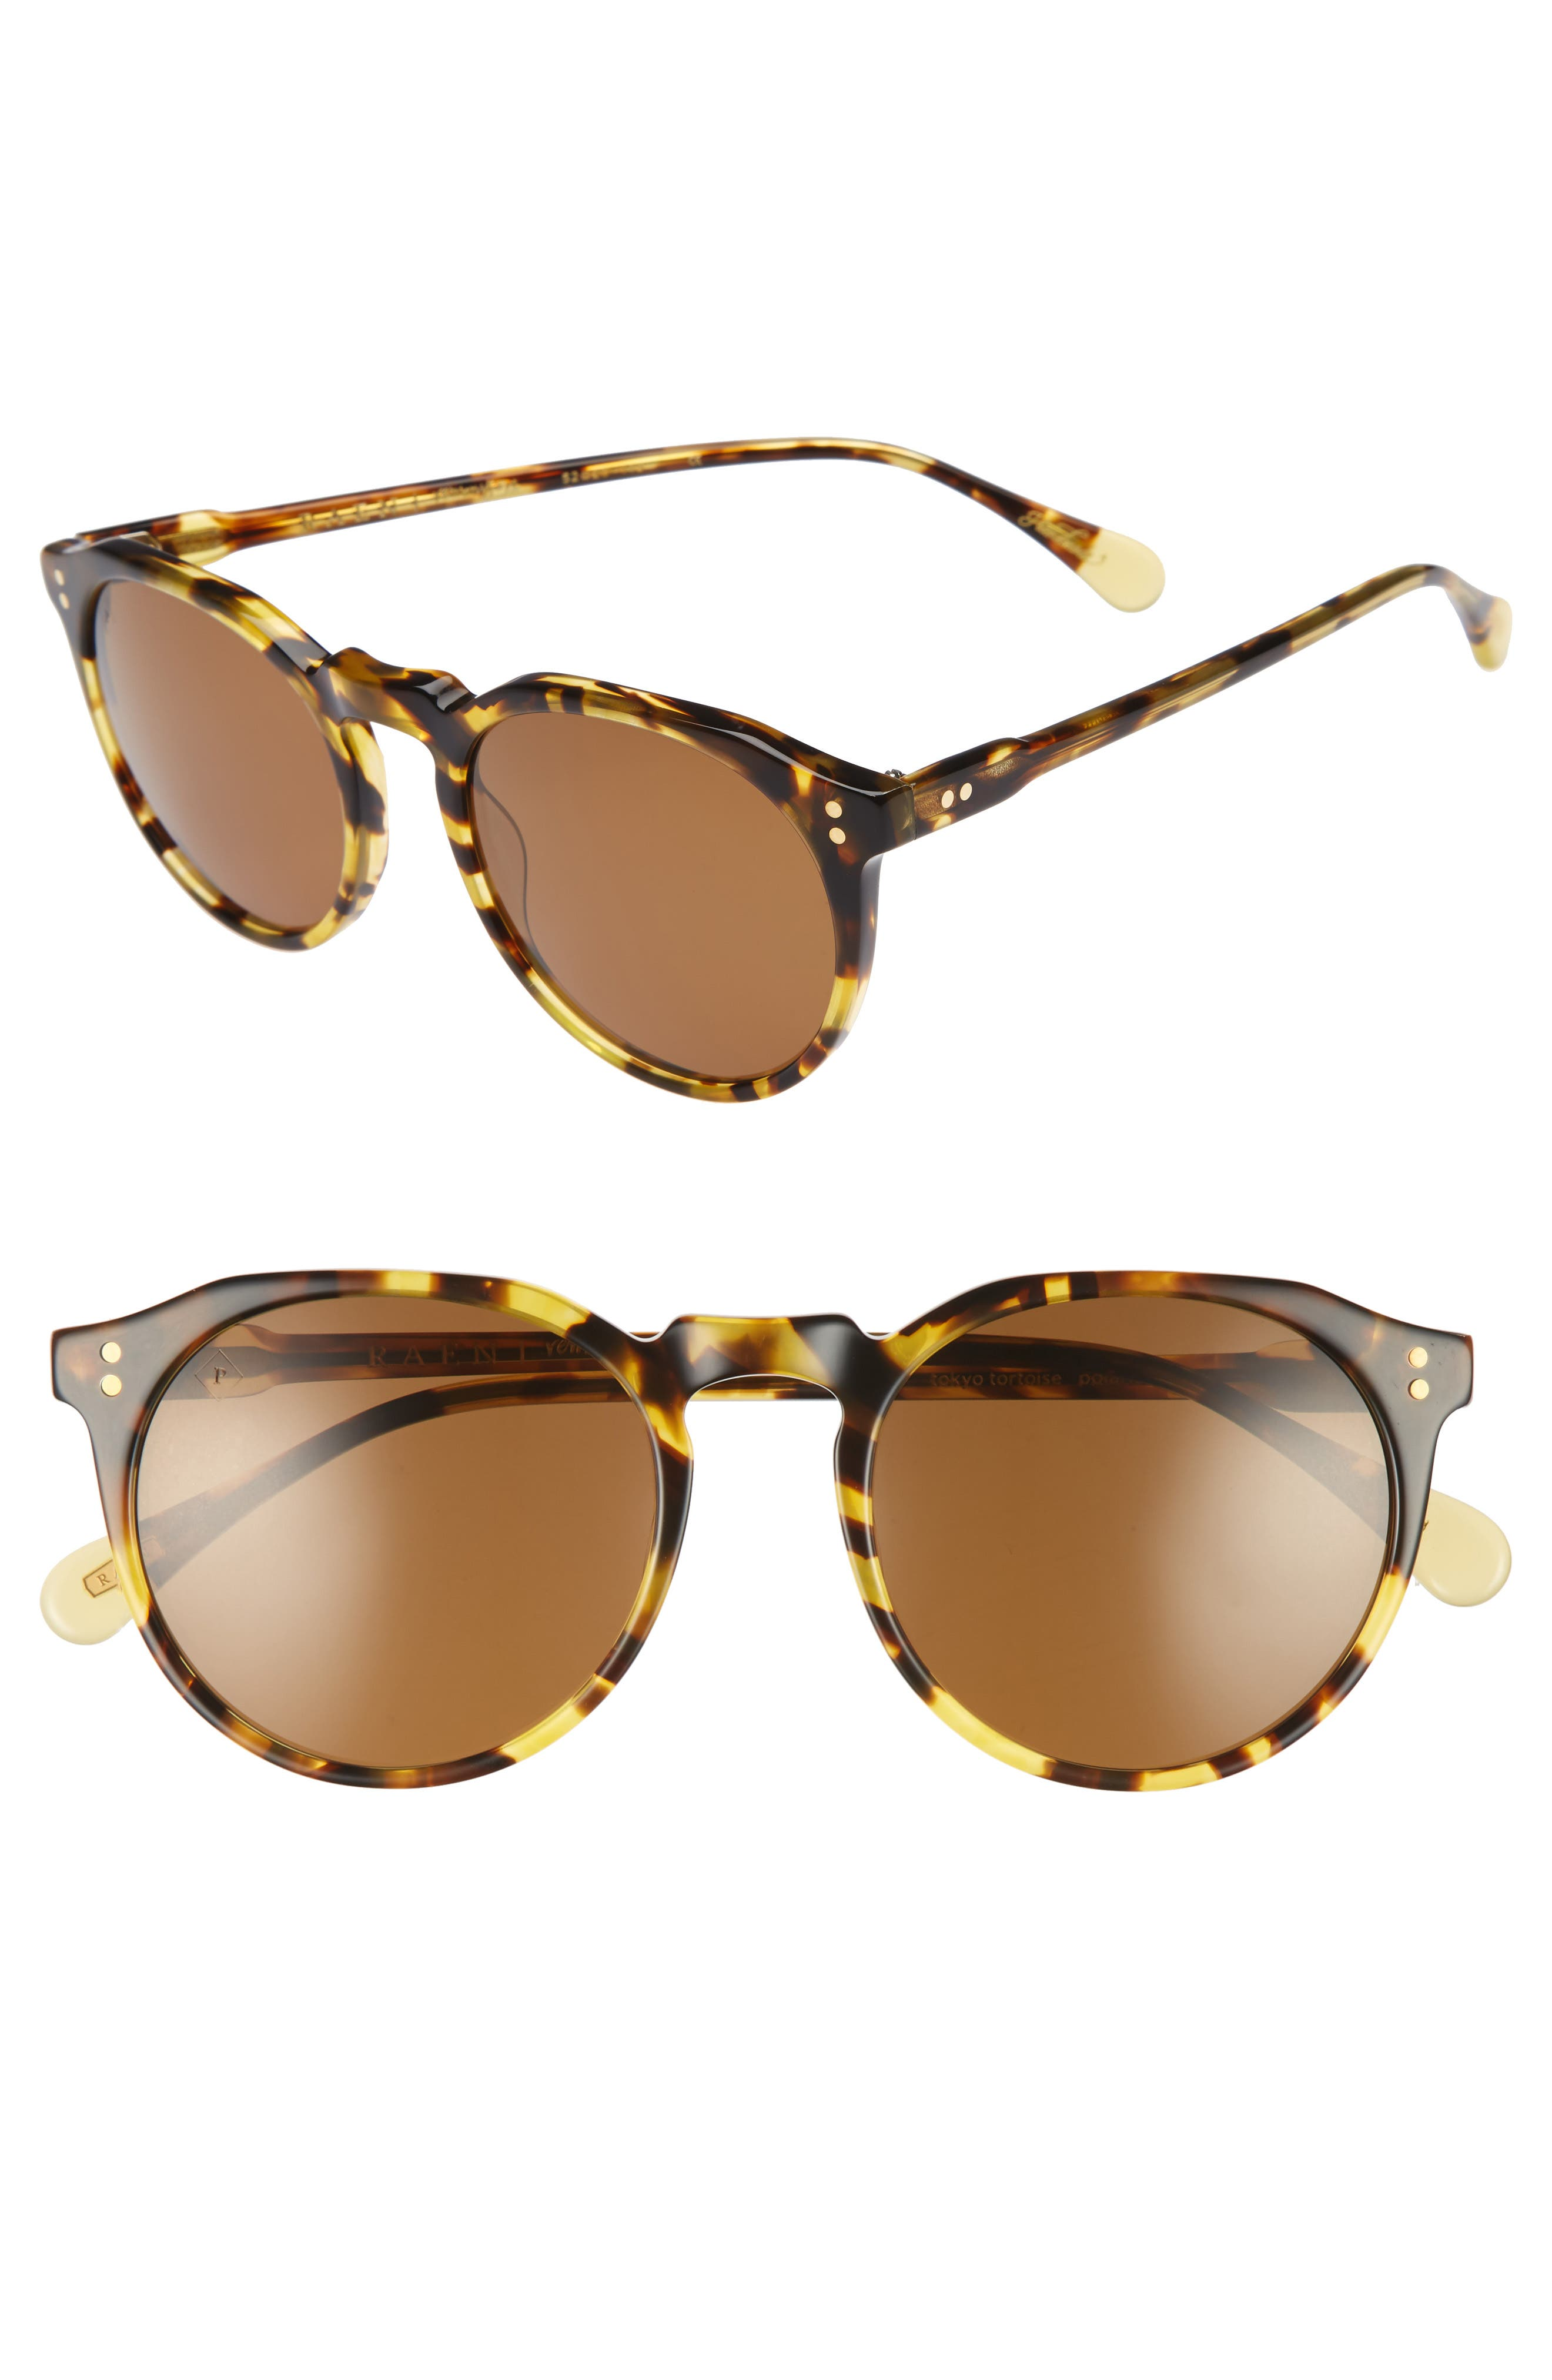 Remmy 52mm Polarized Sunglasses,                         Main,                         color, Tokyo Tortoise/ Brown